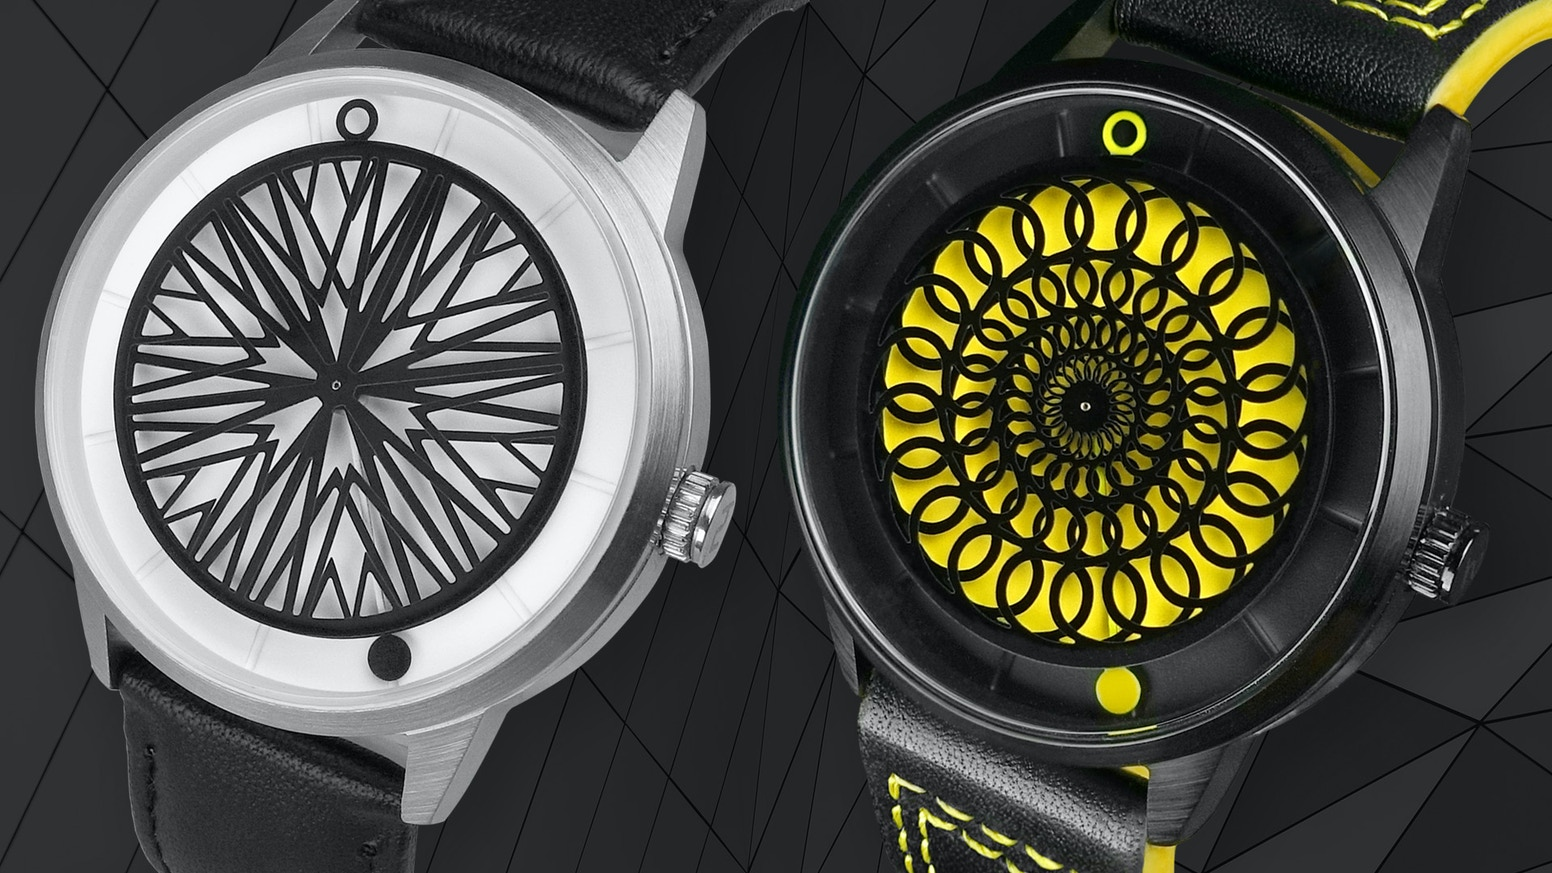 Unique automatic watches putting kinetic sculptures on your wrist. Powered by your own movement and crafted from premium materials.